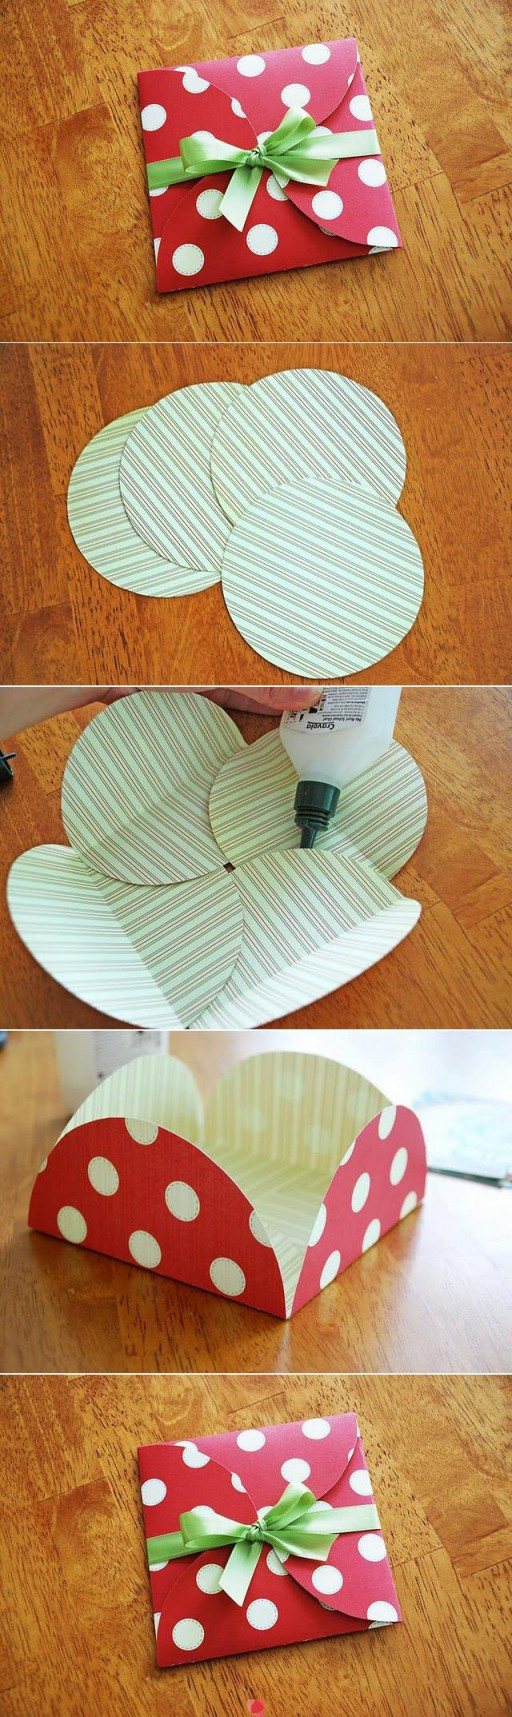 How to make beautiful DIY gift envelope step by step tutorial instructions